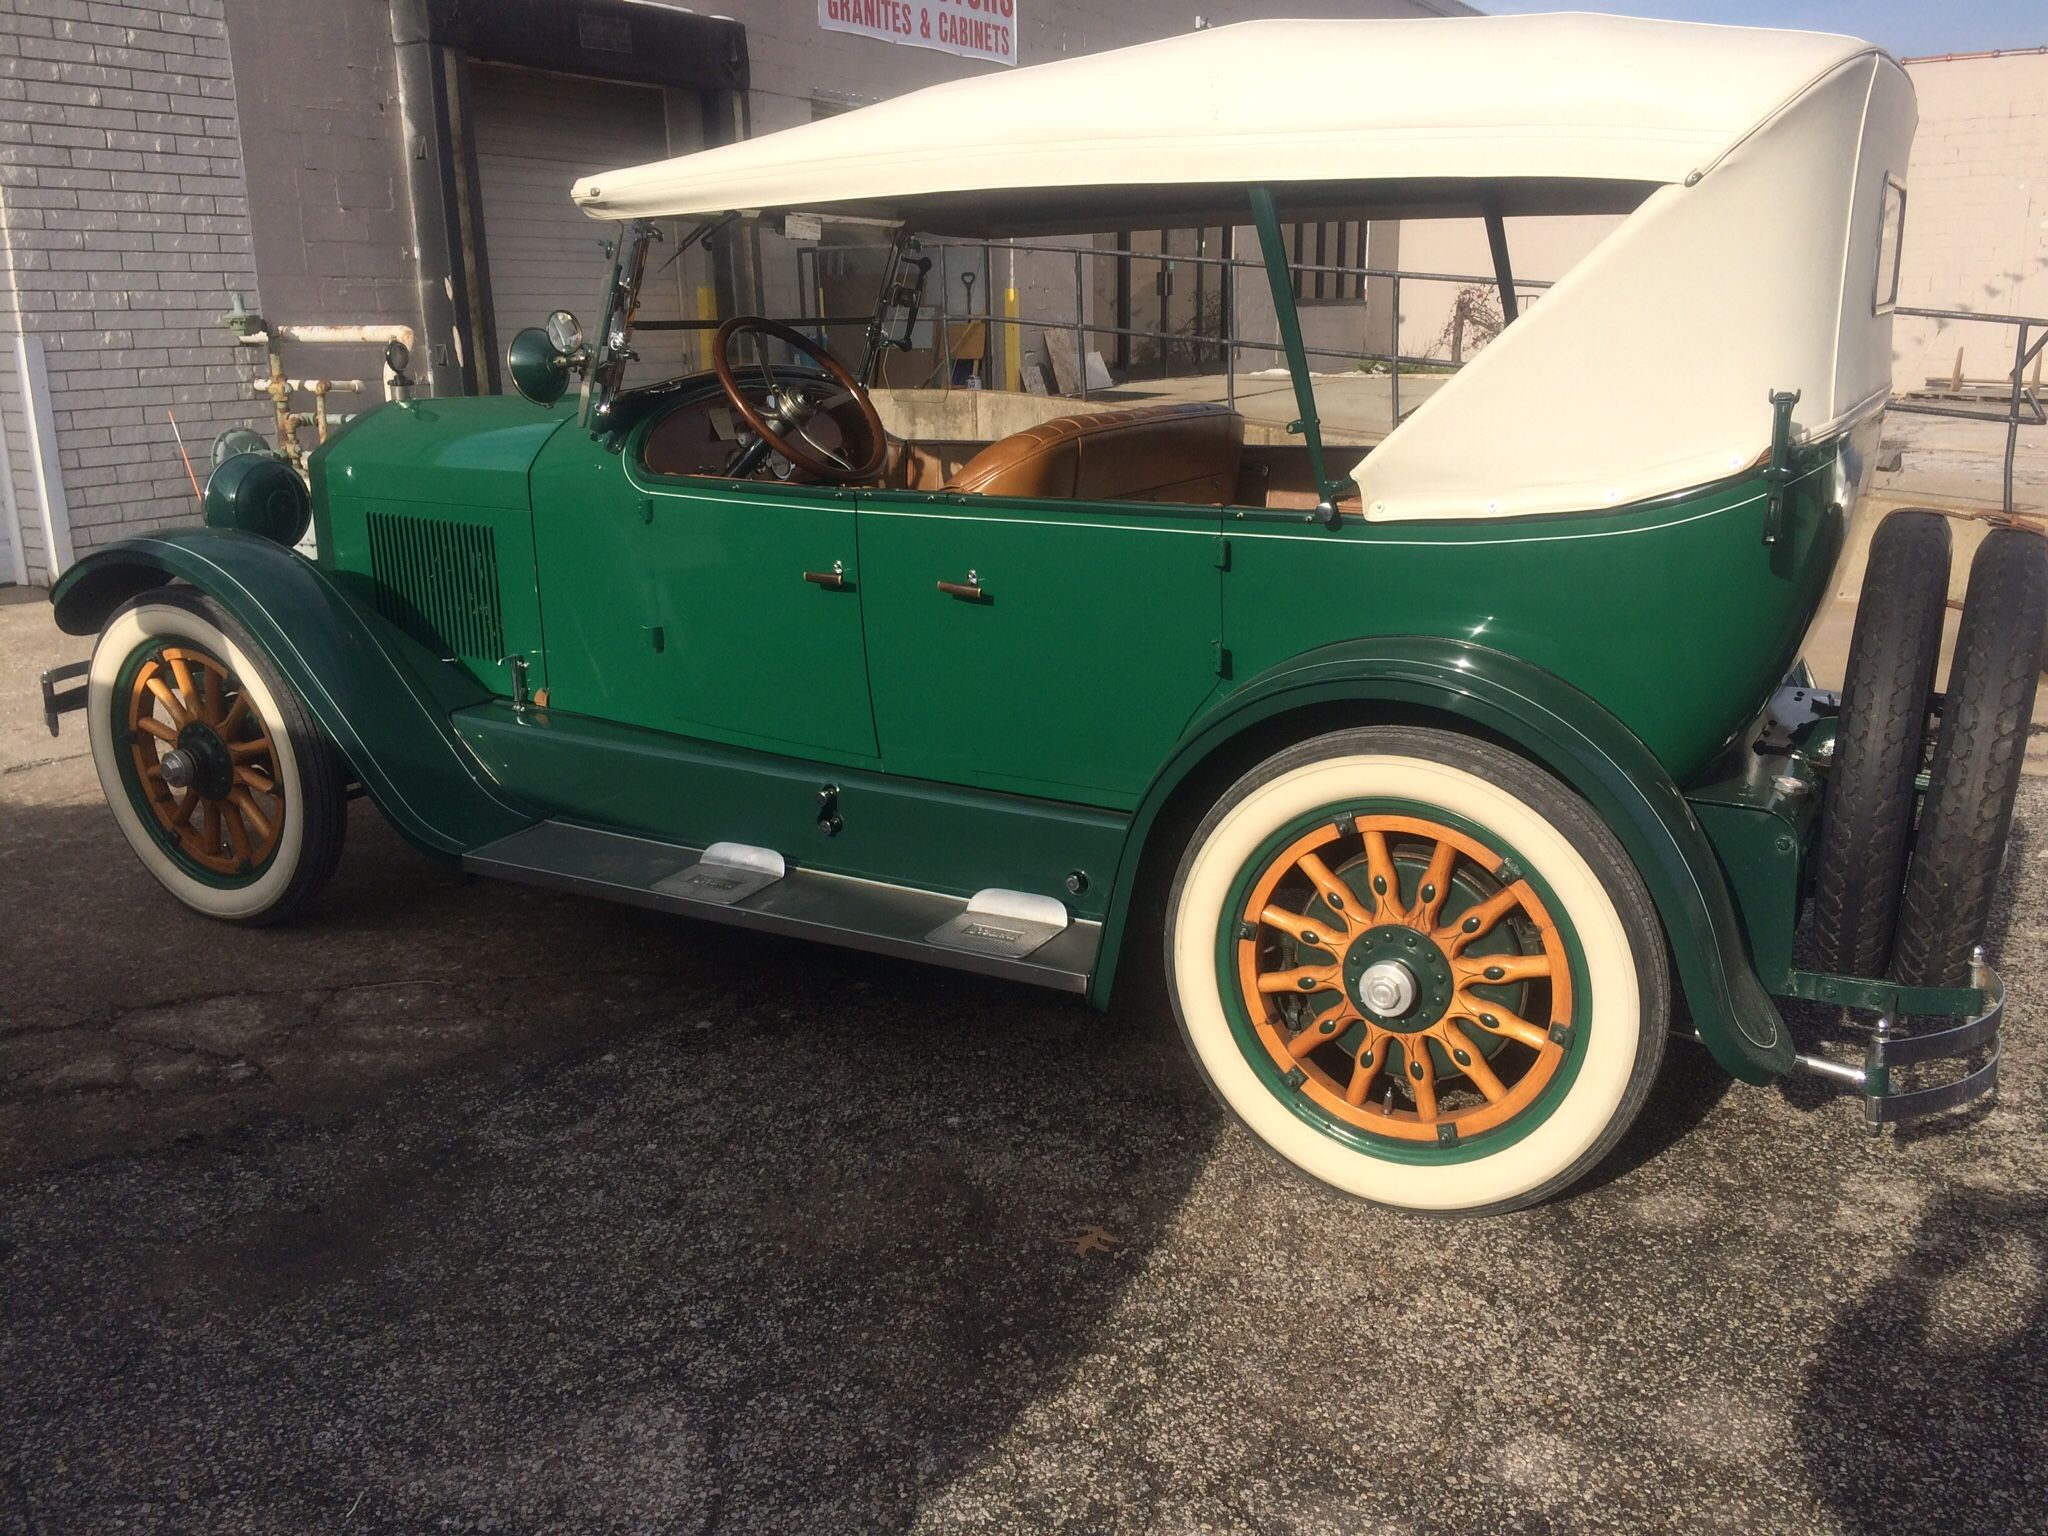 1924 Stearns Knight Classic cars, Touring, Antique cars